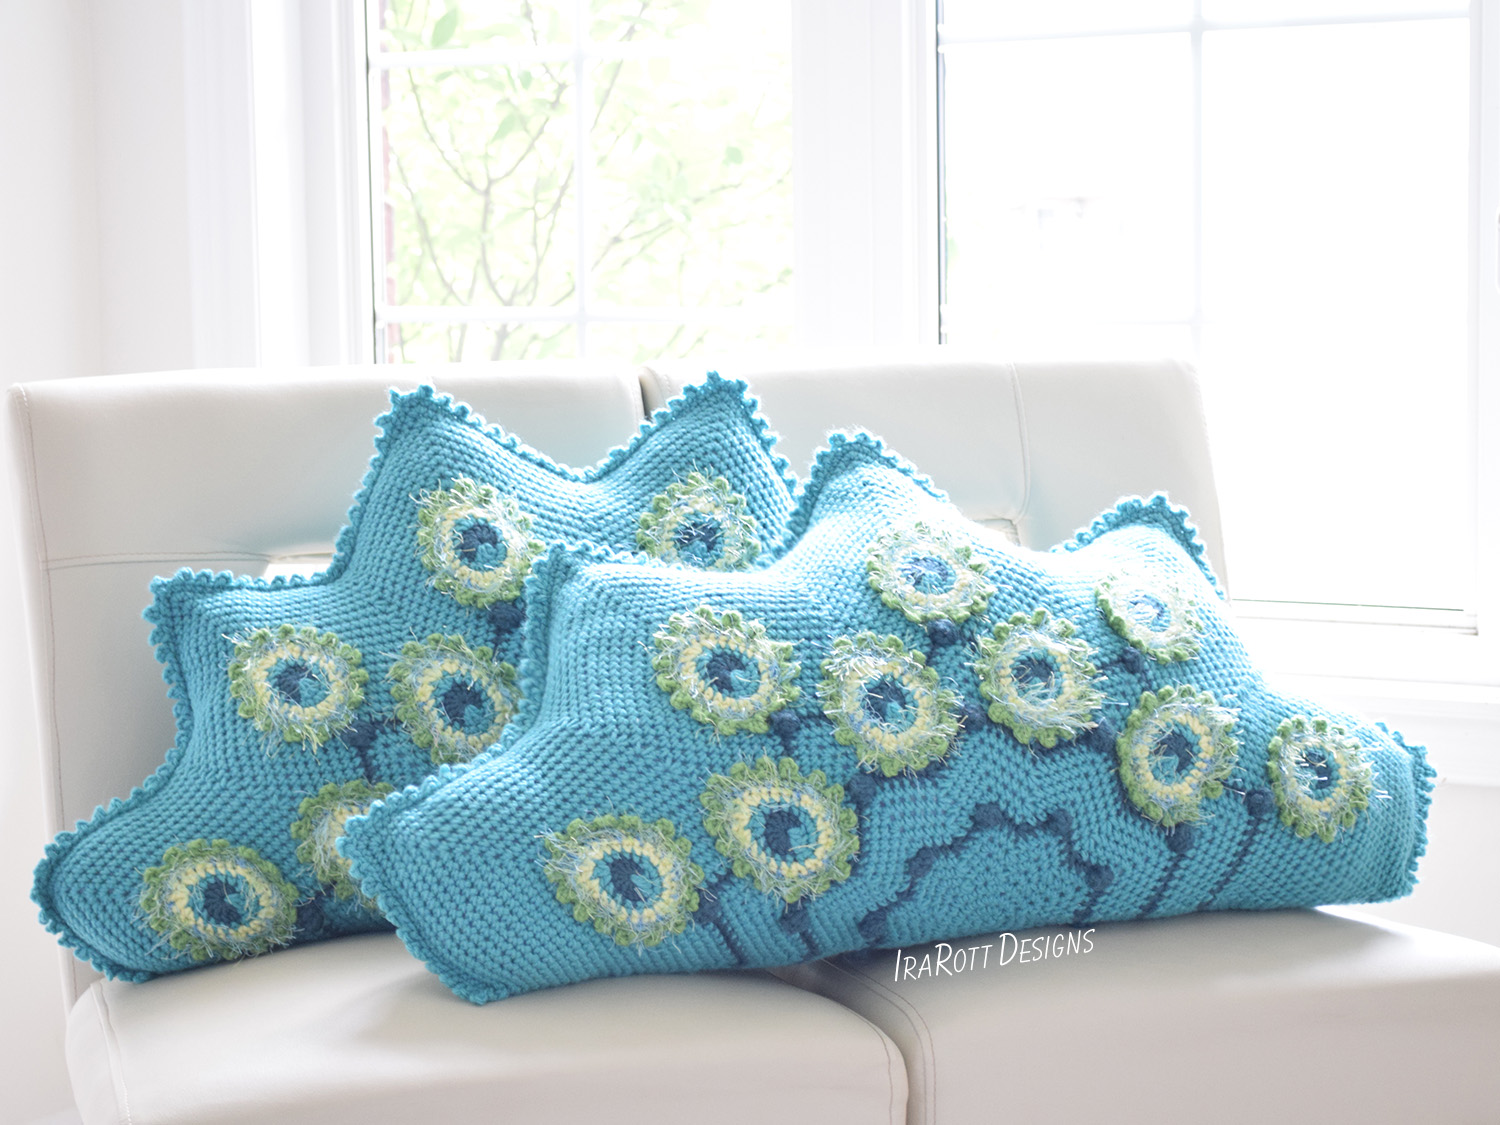 Pavo The Peacock Pillow Pdf Crochet Pillow Irarott Inc